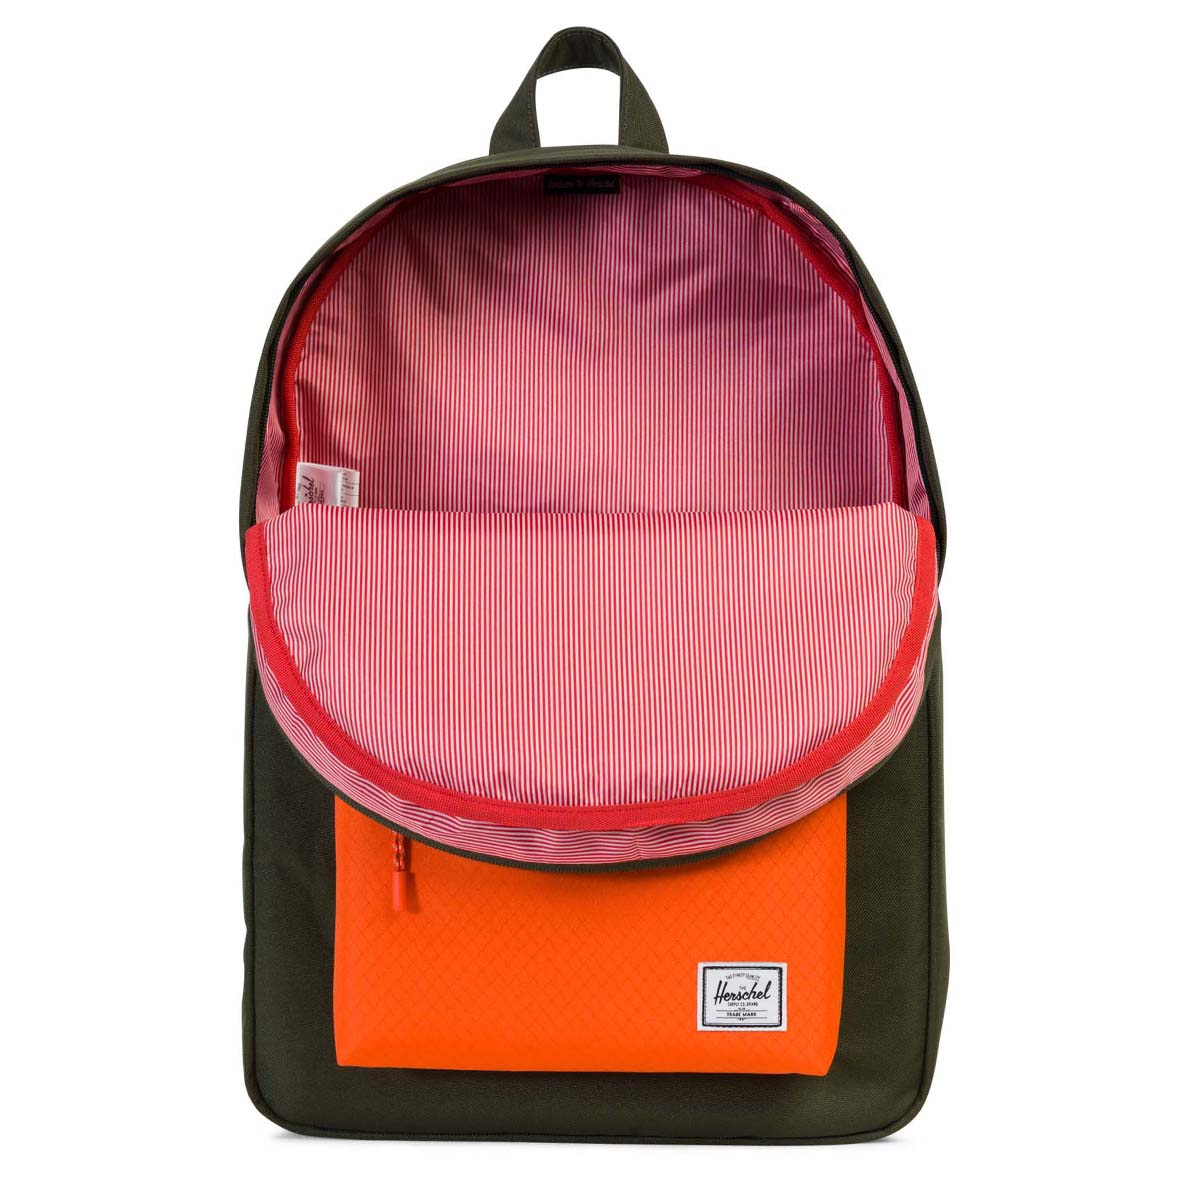 Gym Bag Herschel: Herschel Supply Co. Green & Orange Classic Backpack Unisex